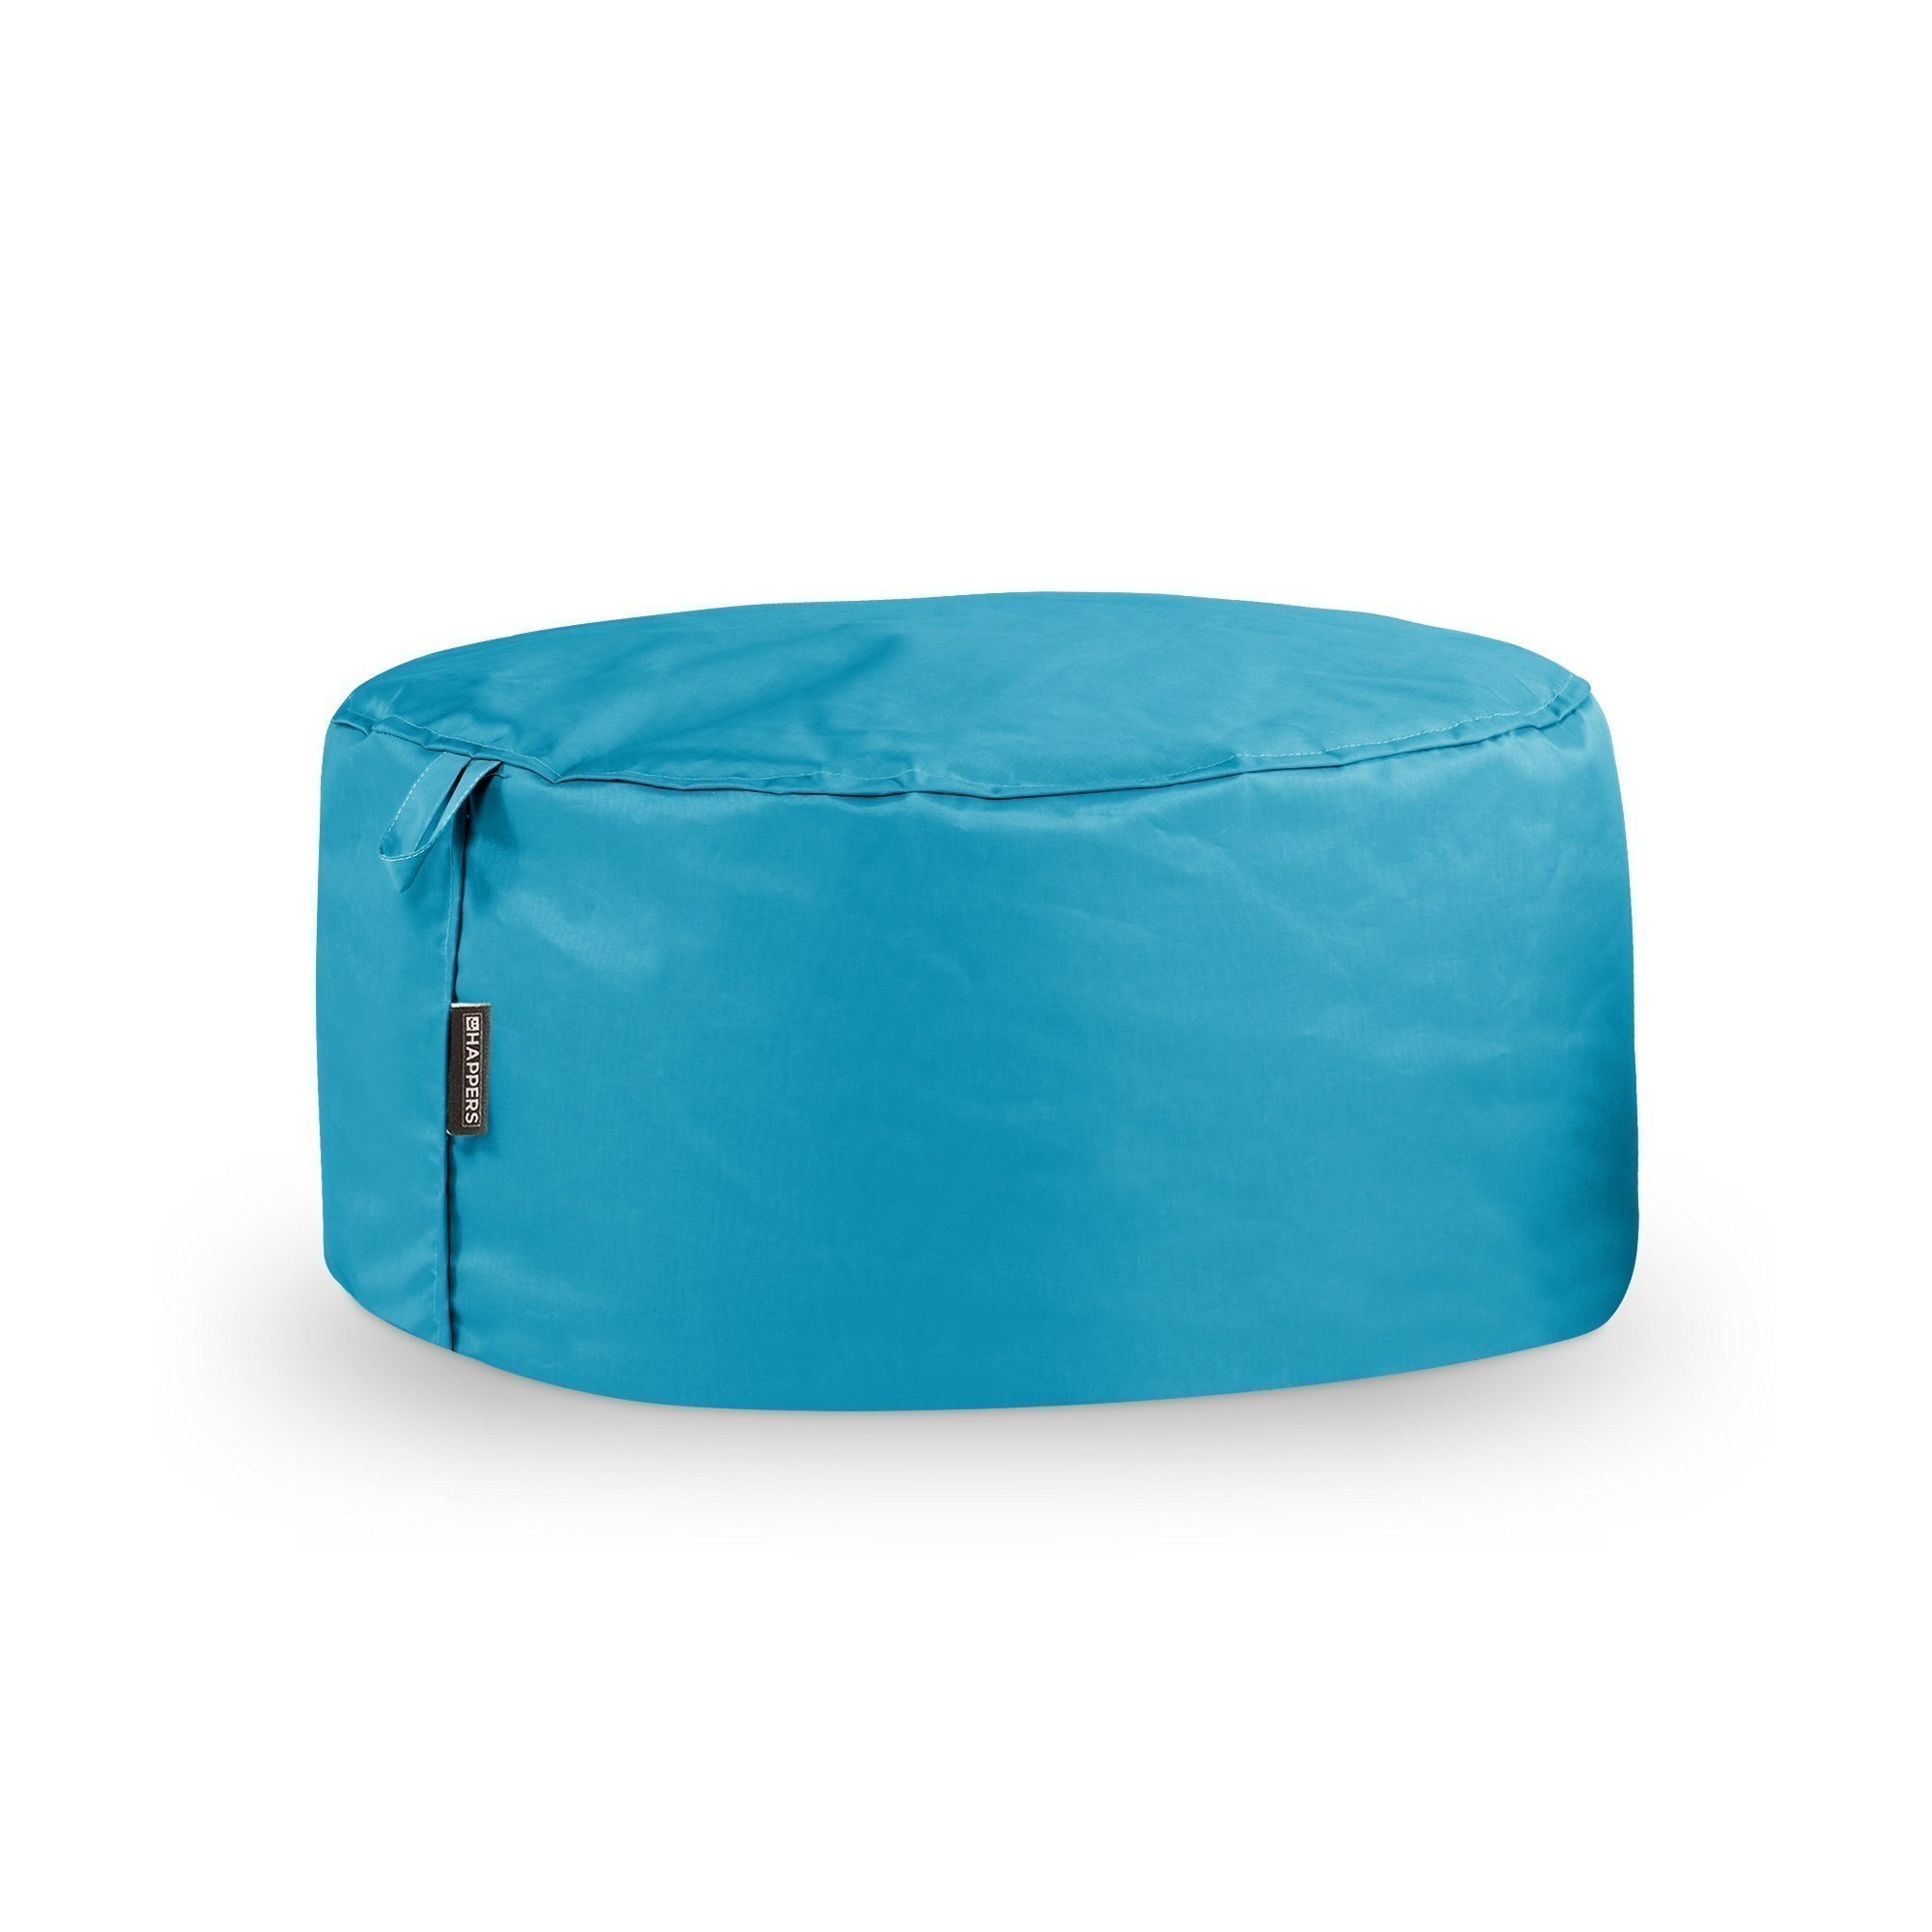 Puff Redondo Naylim Impermeable Turquesa Happers